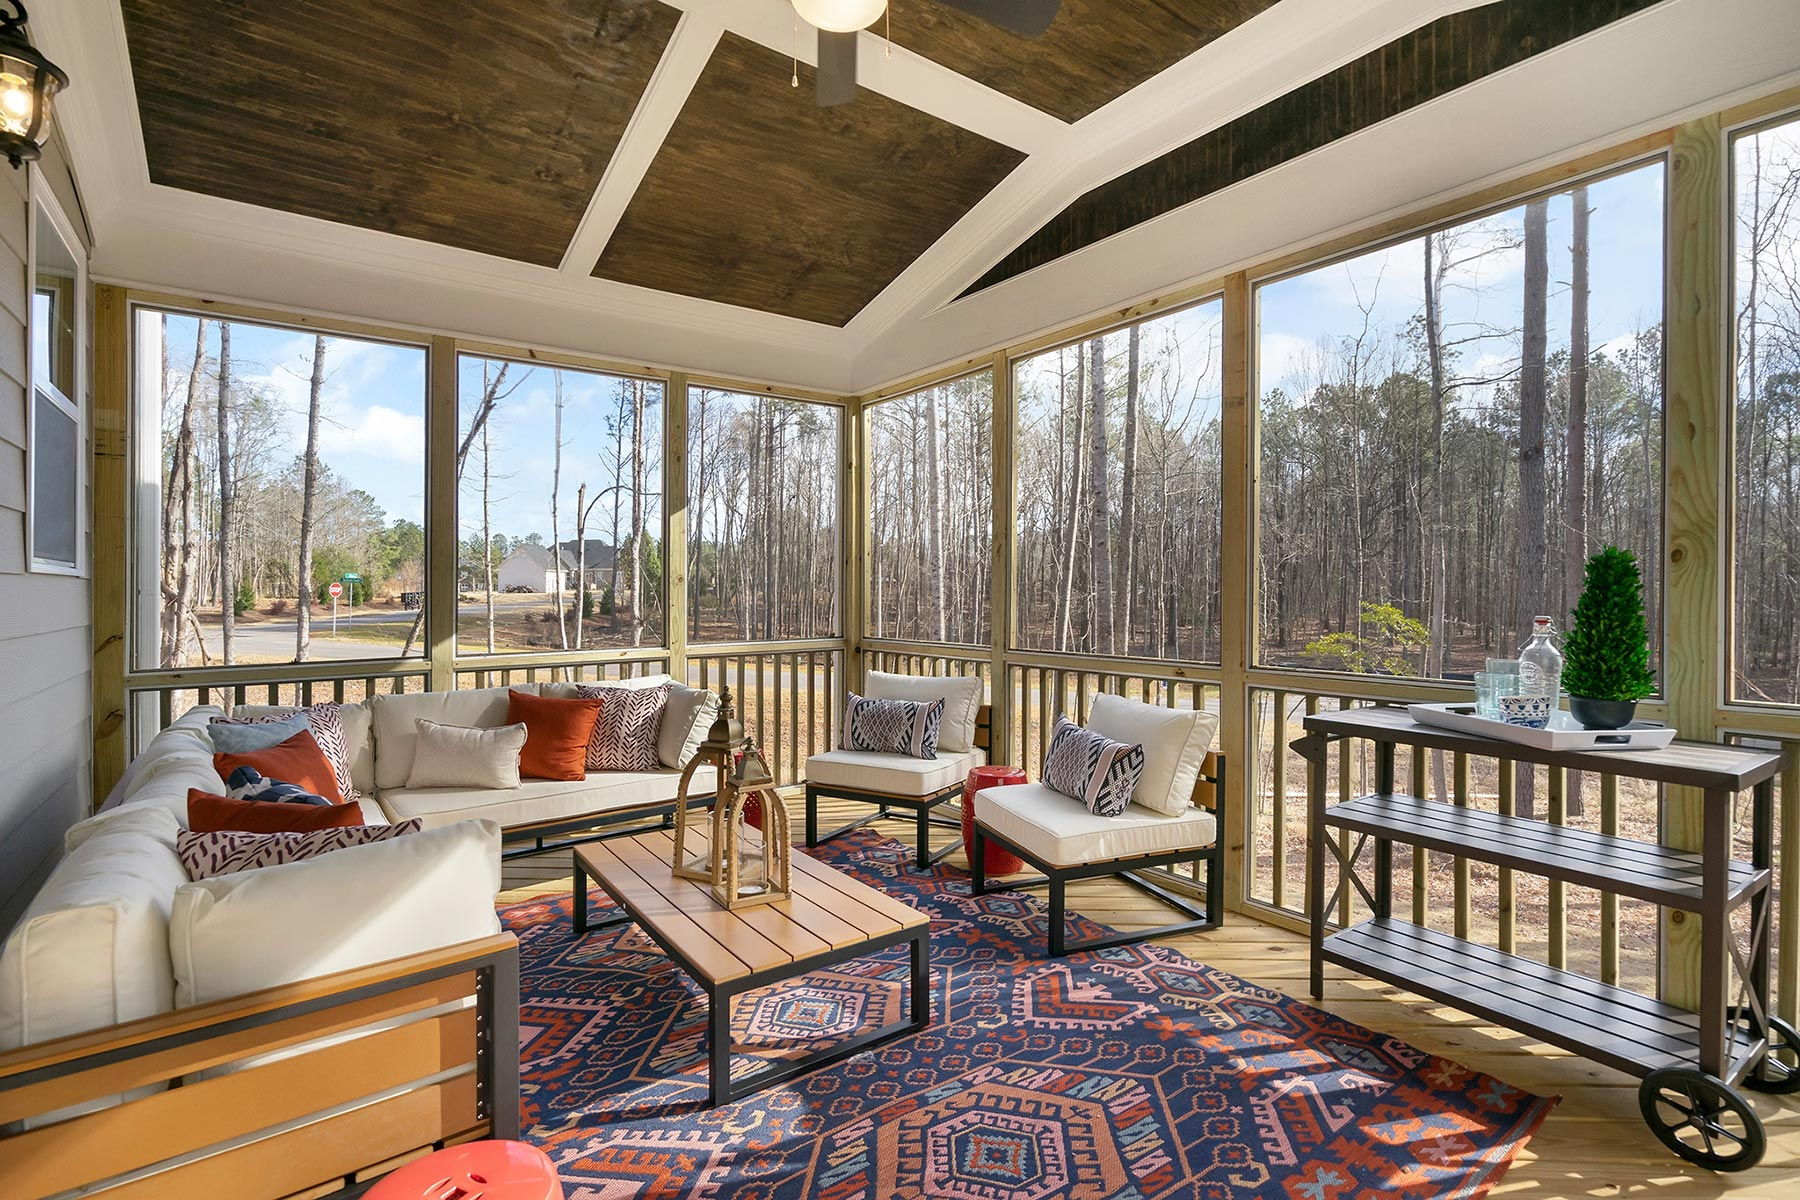 Edenton Plan Others at Ballentine Place in Holly Springs North Carolina by Mattamy Homes